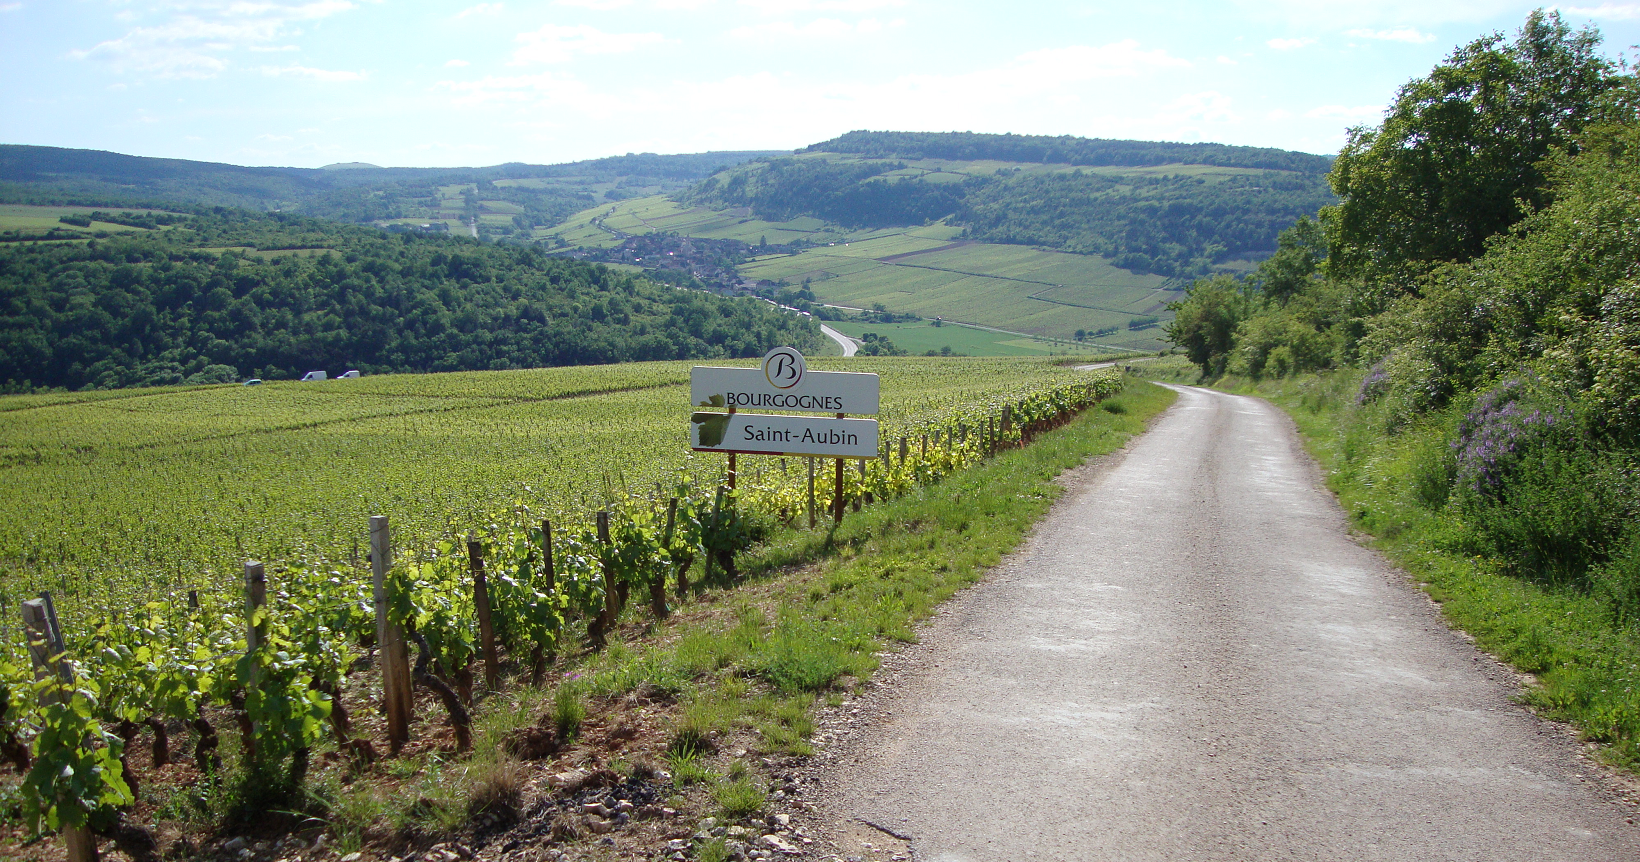 Saint-Aubin vineyards